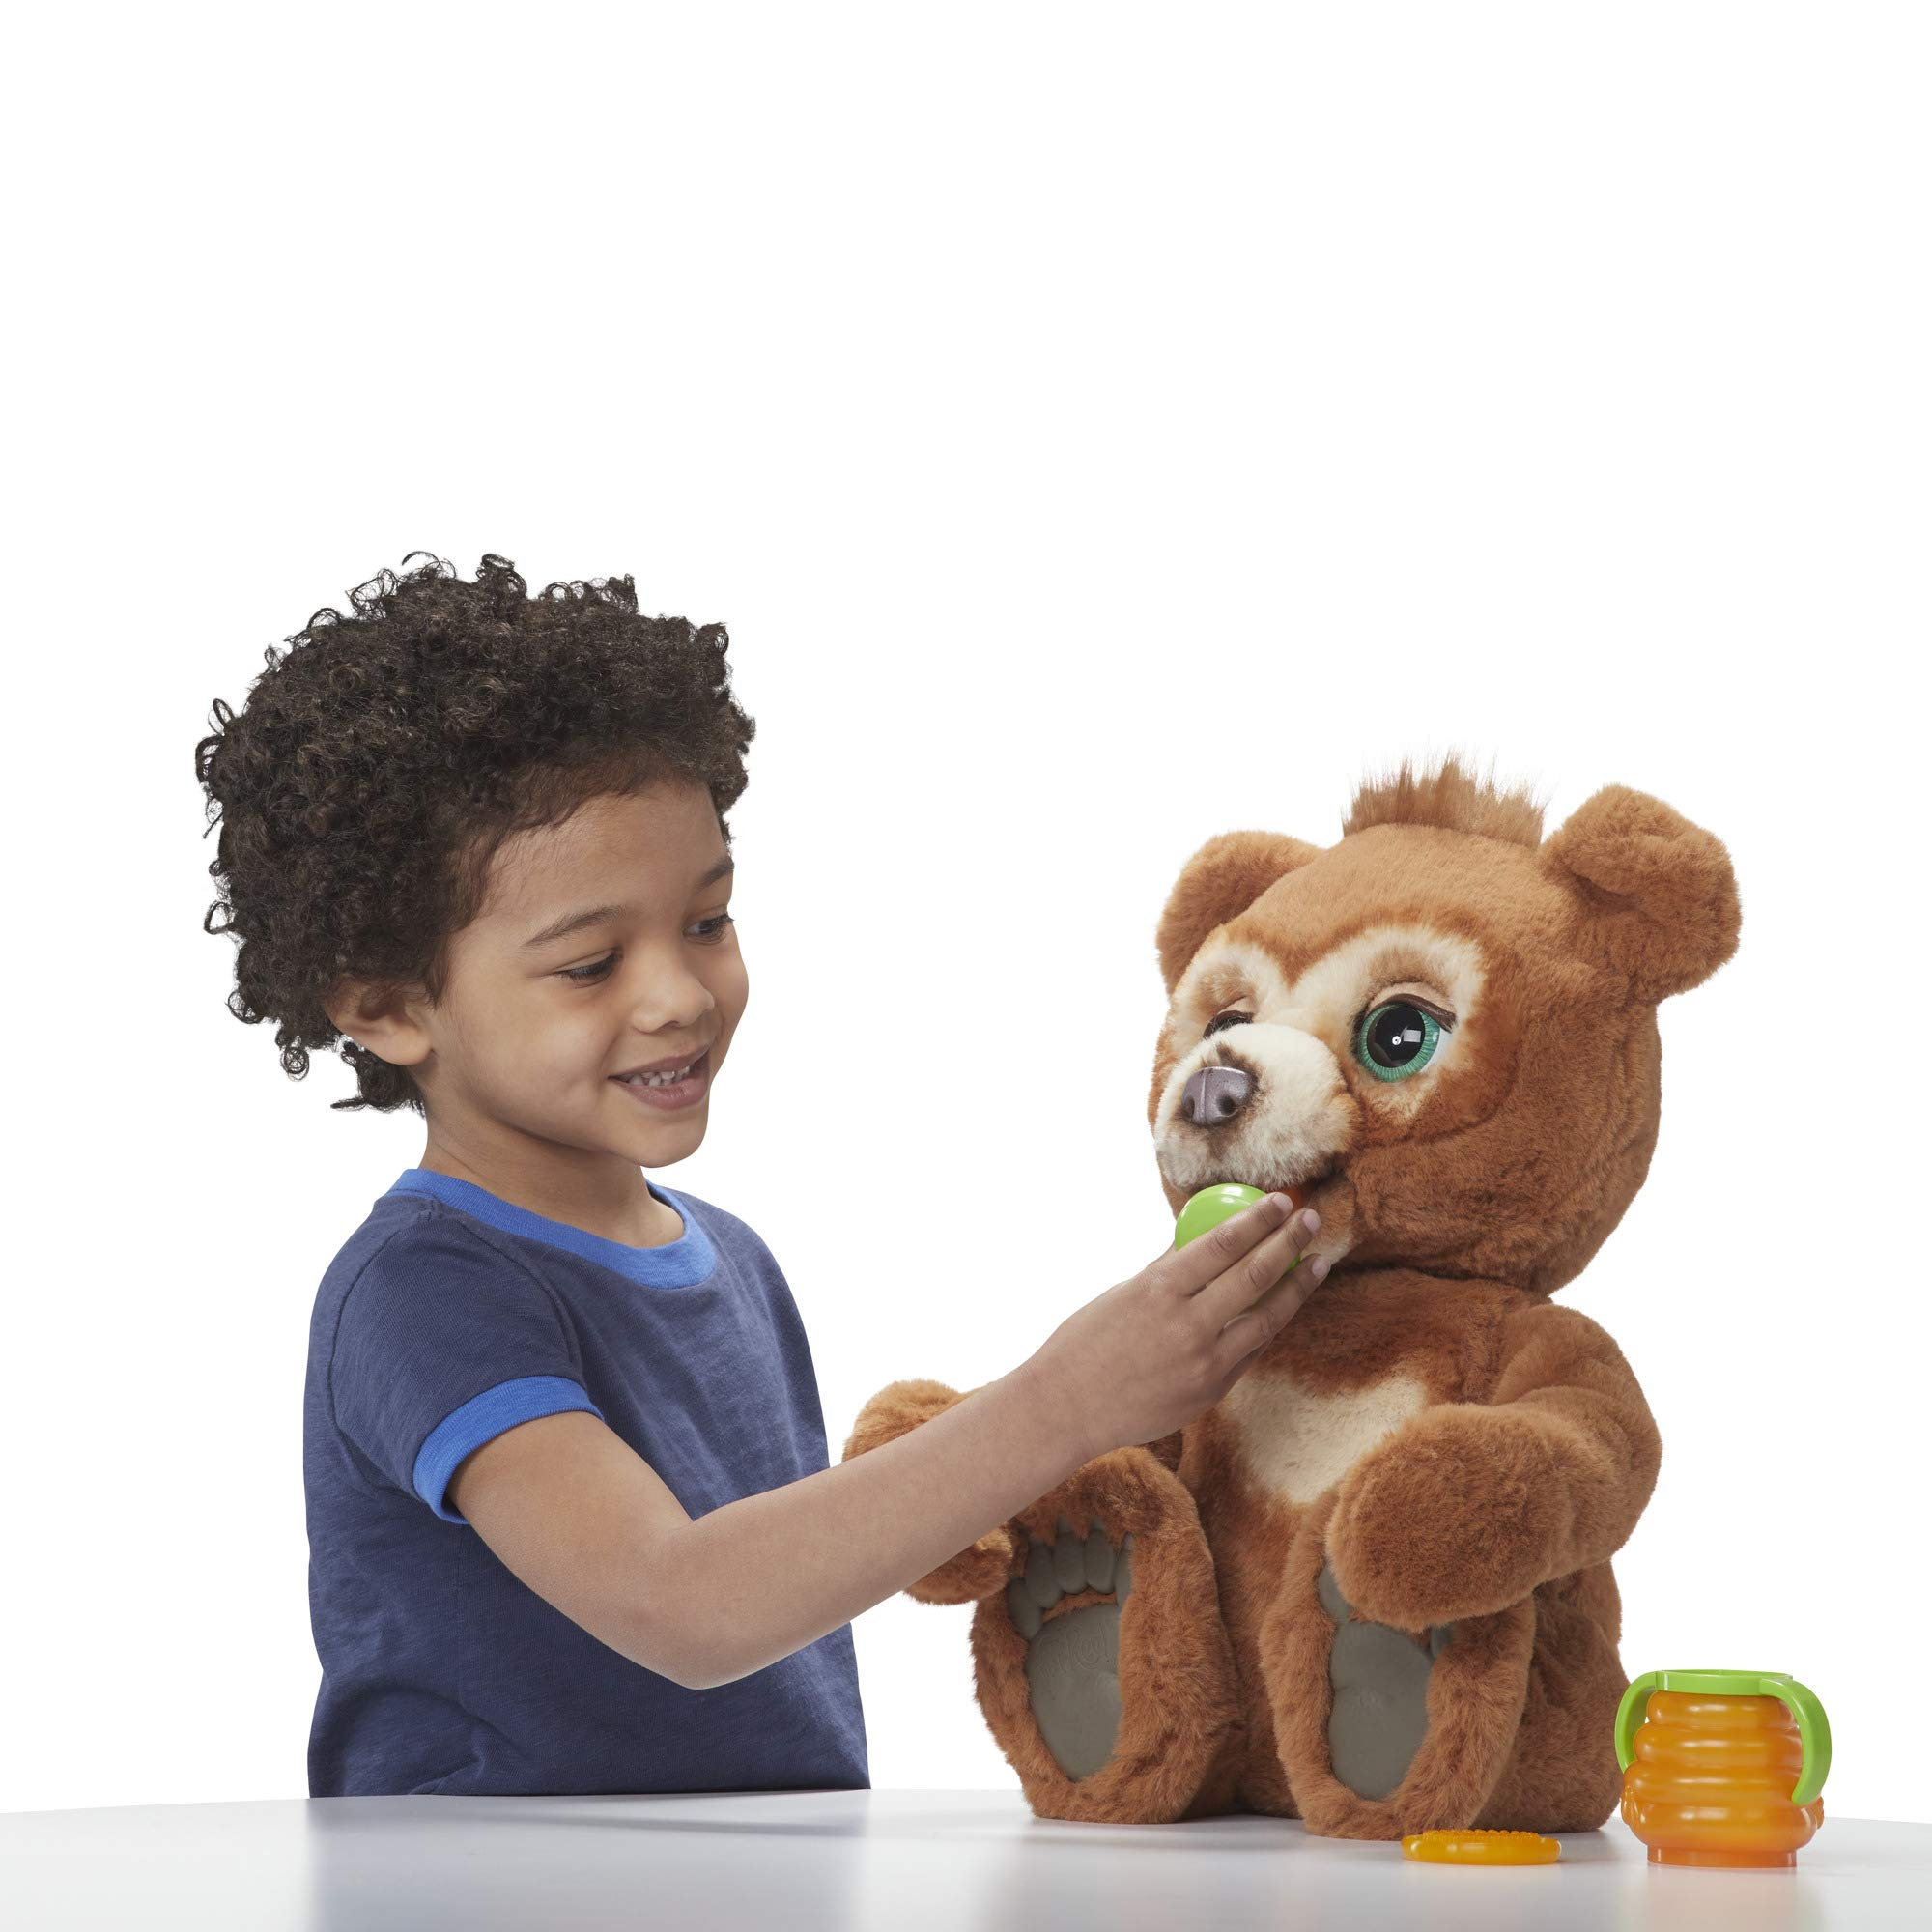 FurReal Cubby, The Curious Bear Interactive Plush Toy, Ages 4 and Up by FurReal (Image #5)